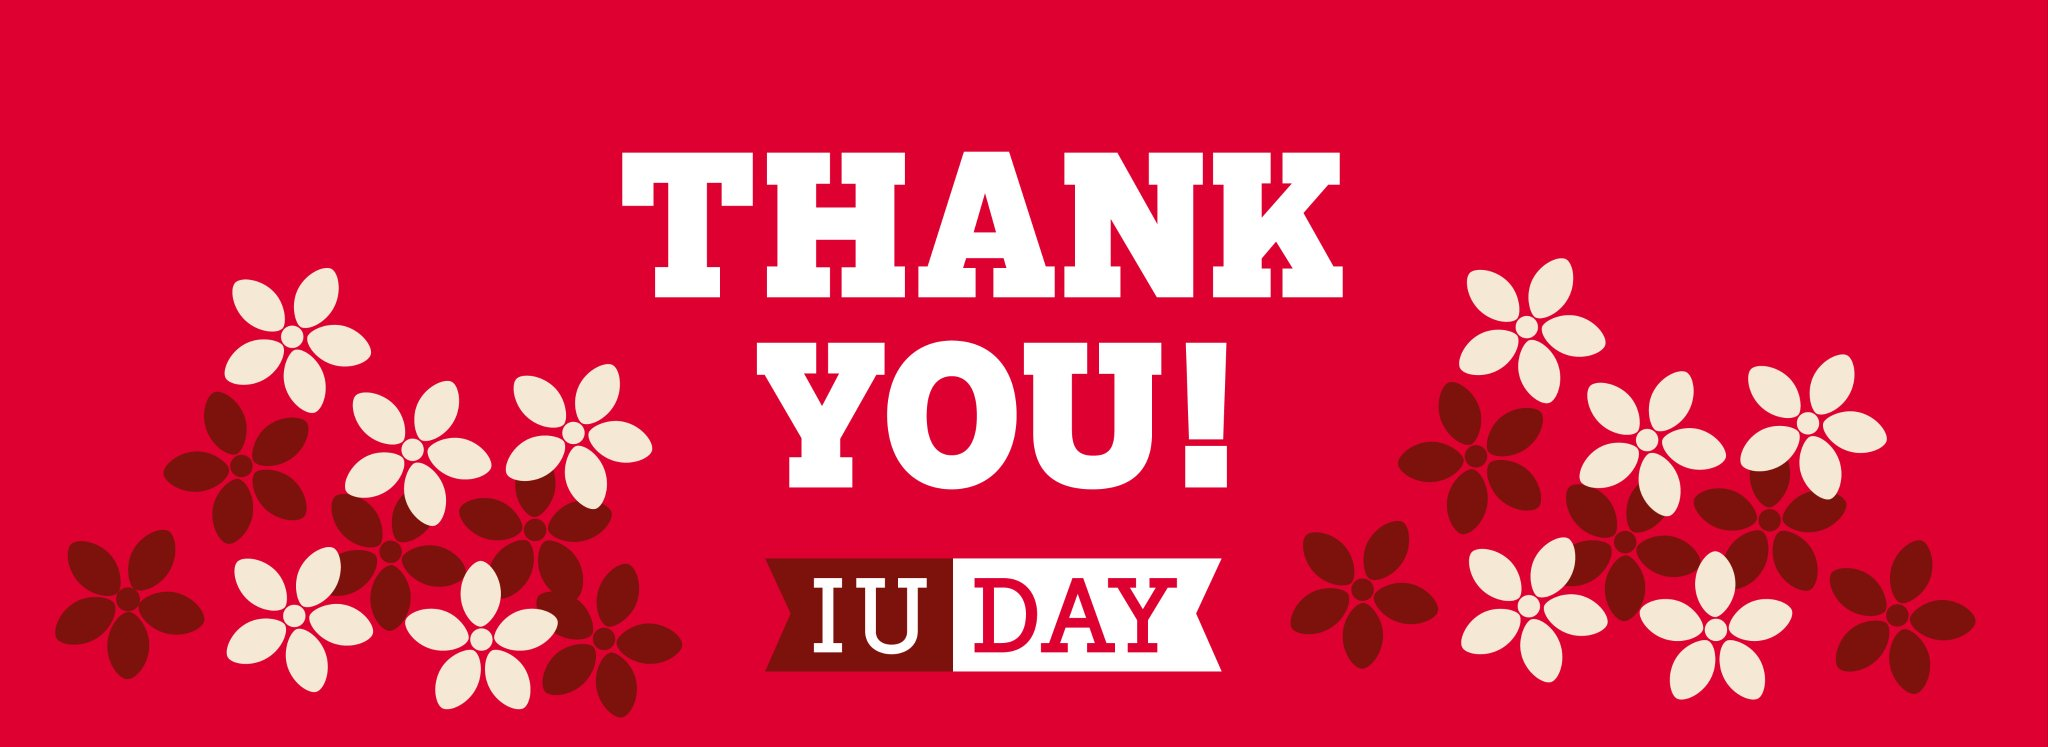 IU Day thank you